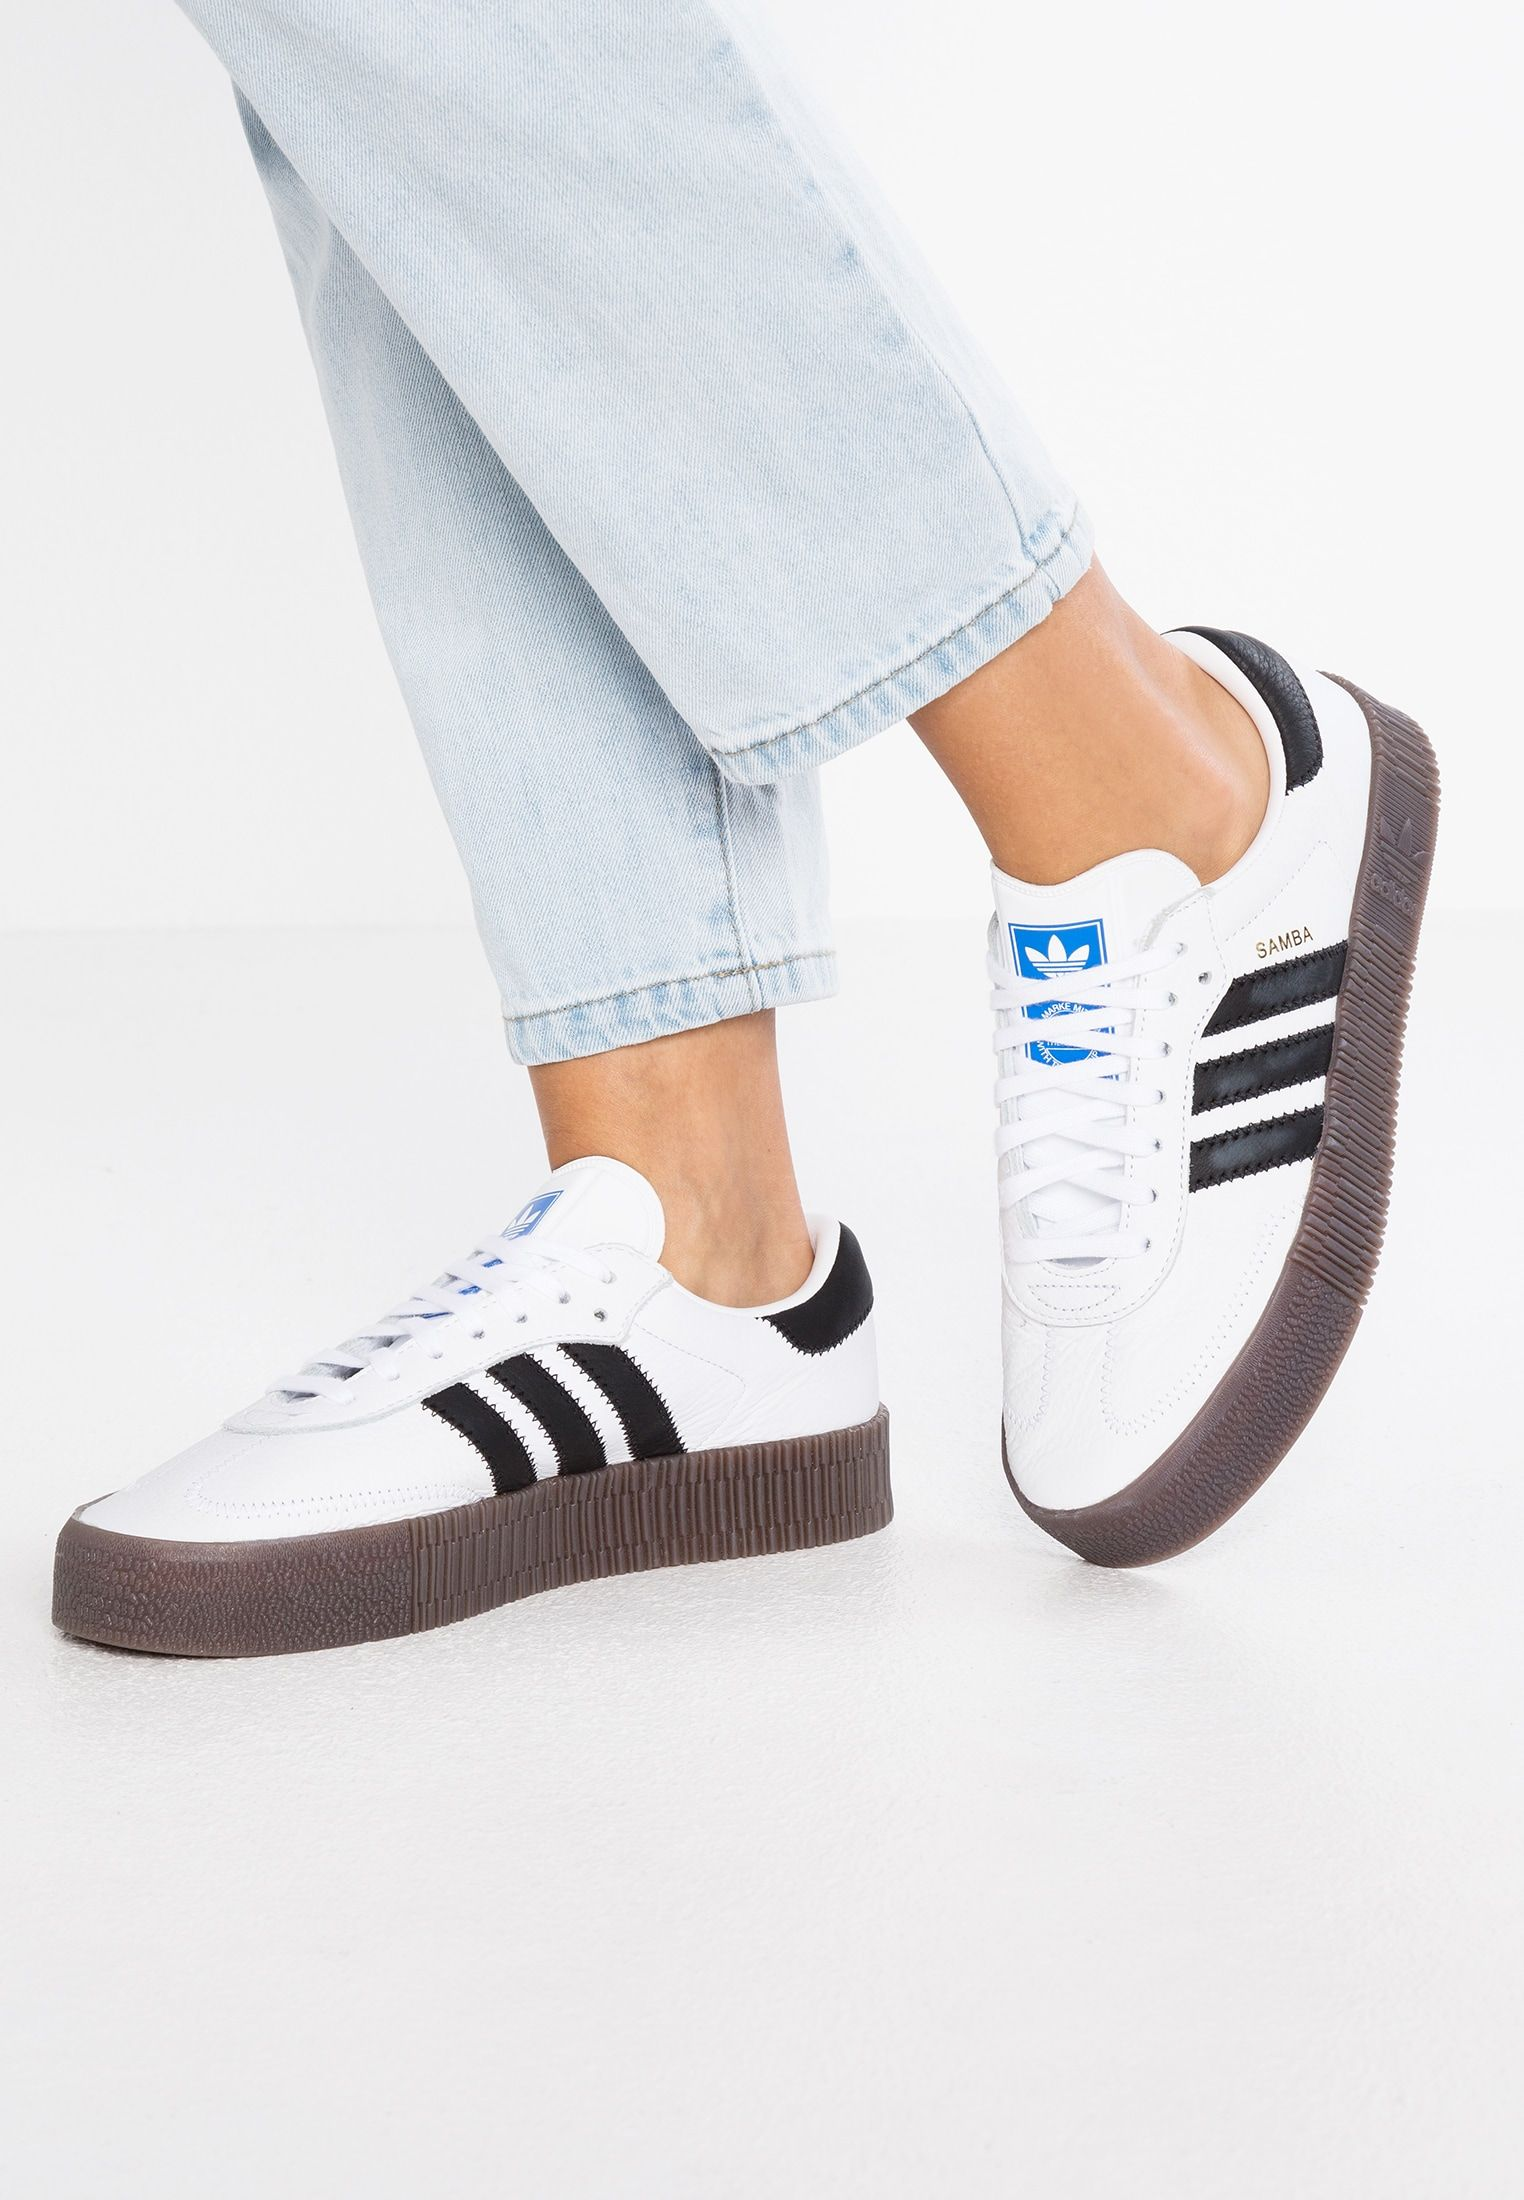 hot sale online 8c8bb 818ab adidas Originals SAMBAROSE - Sneakers - footwear white core black - Zalando .se